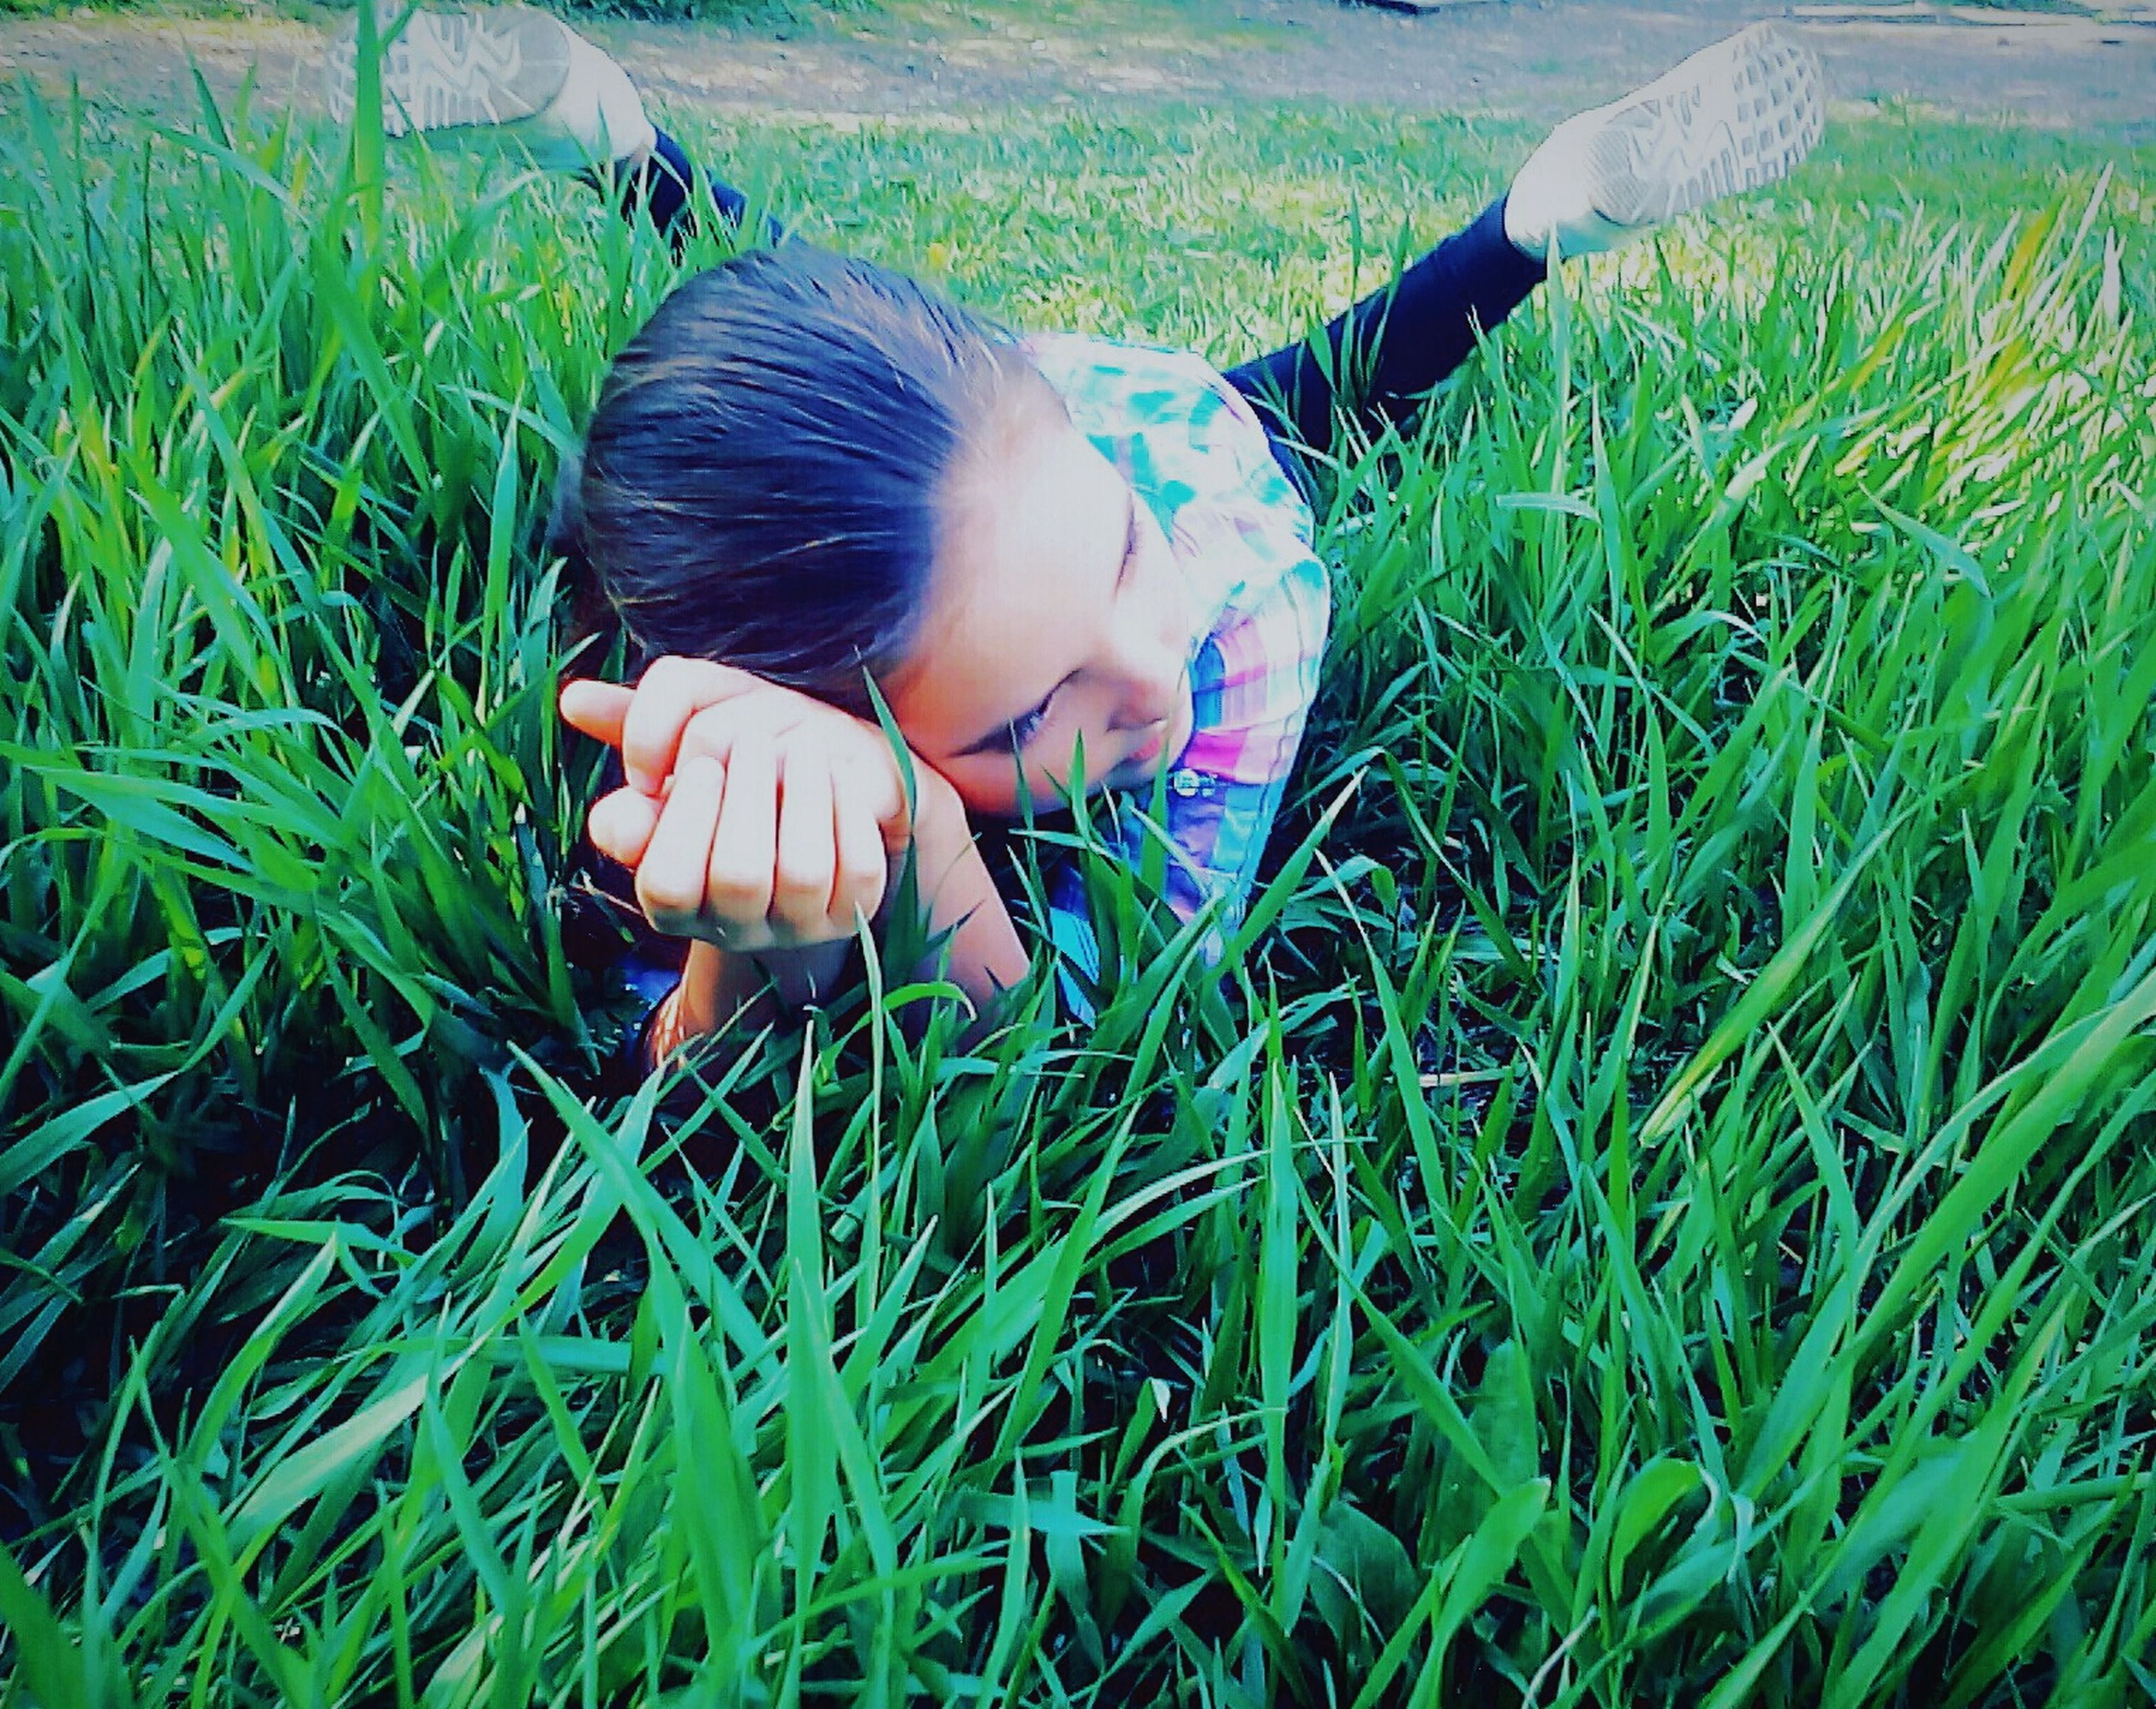 grass, field, childhood, lifestyles, grassy, leisure activity, elementary age, high angle view, innocence, person, girls, green color, casual clothing, full length, day, outdoors, growth, nature